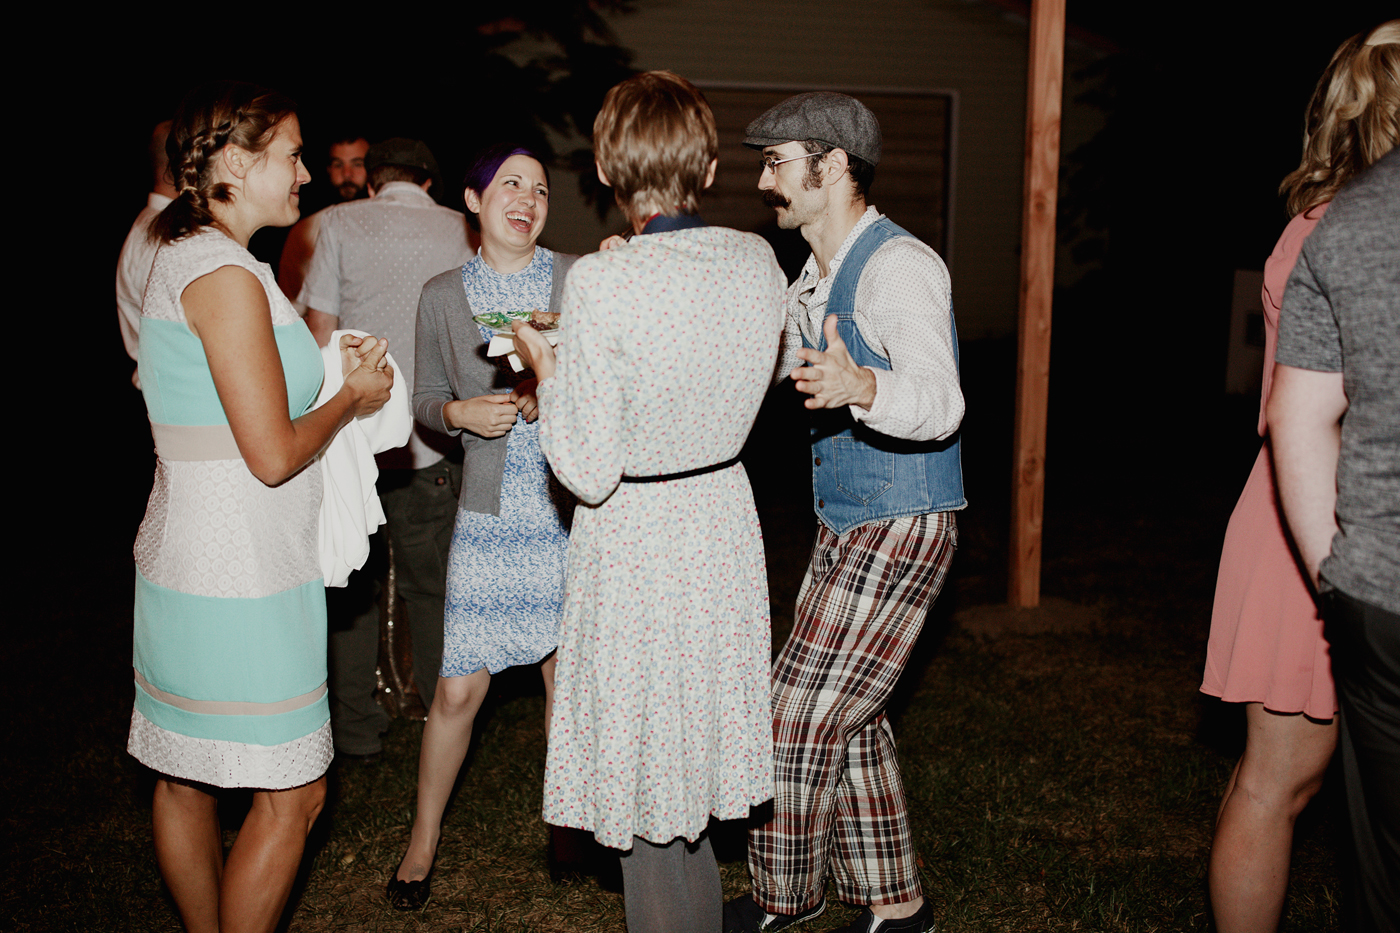 amandavanvels_backyardwedding_0841.jpg